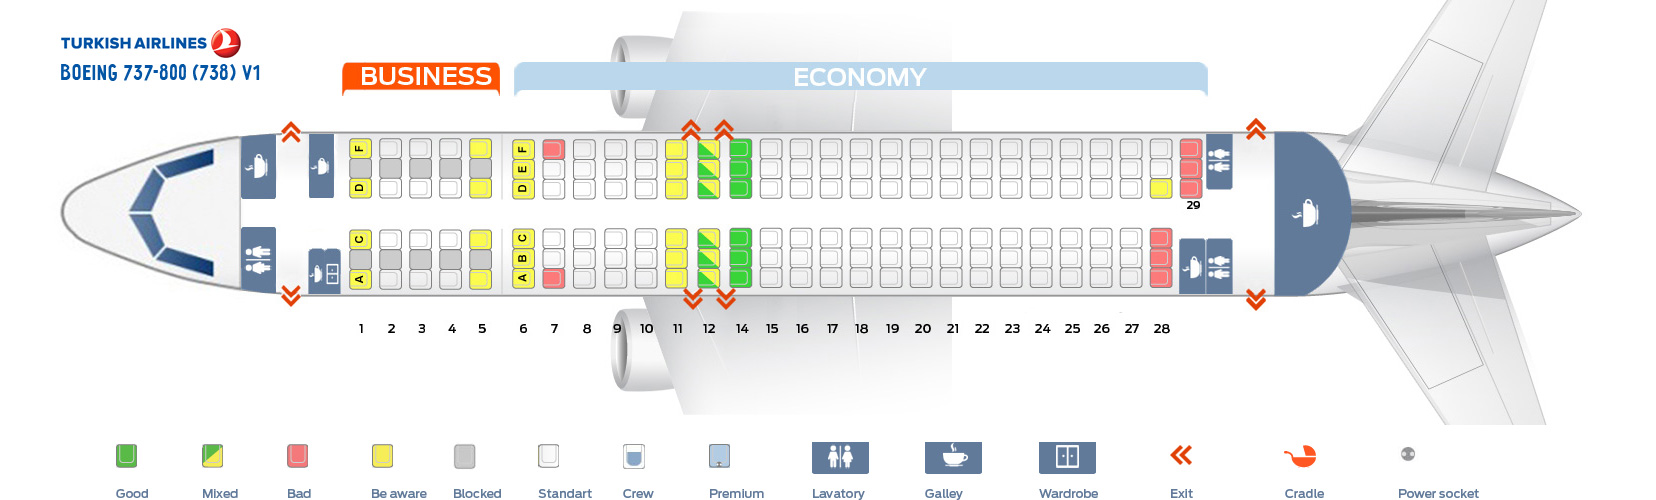 Seat Map Boeing 737-800 V1 Turkish Airlines